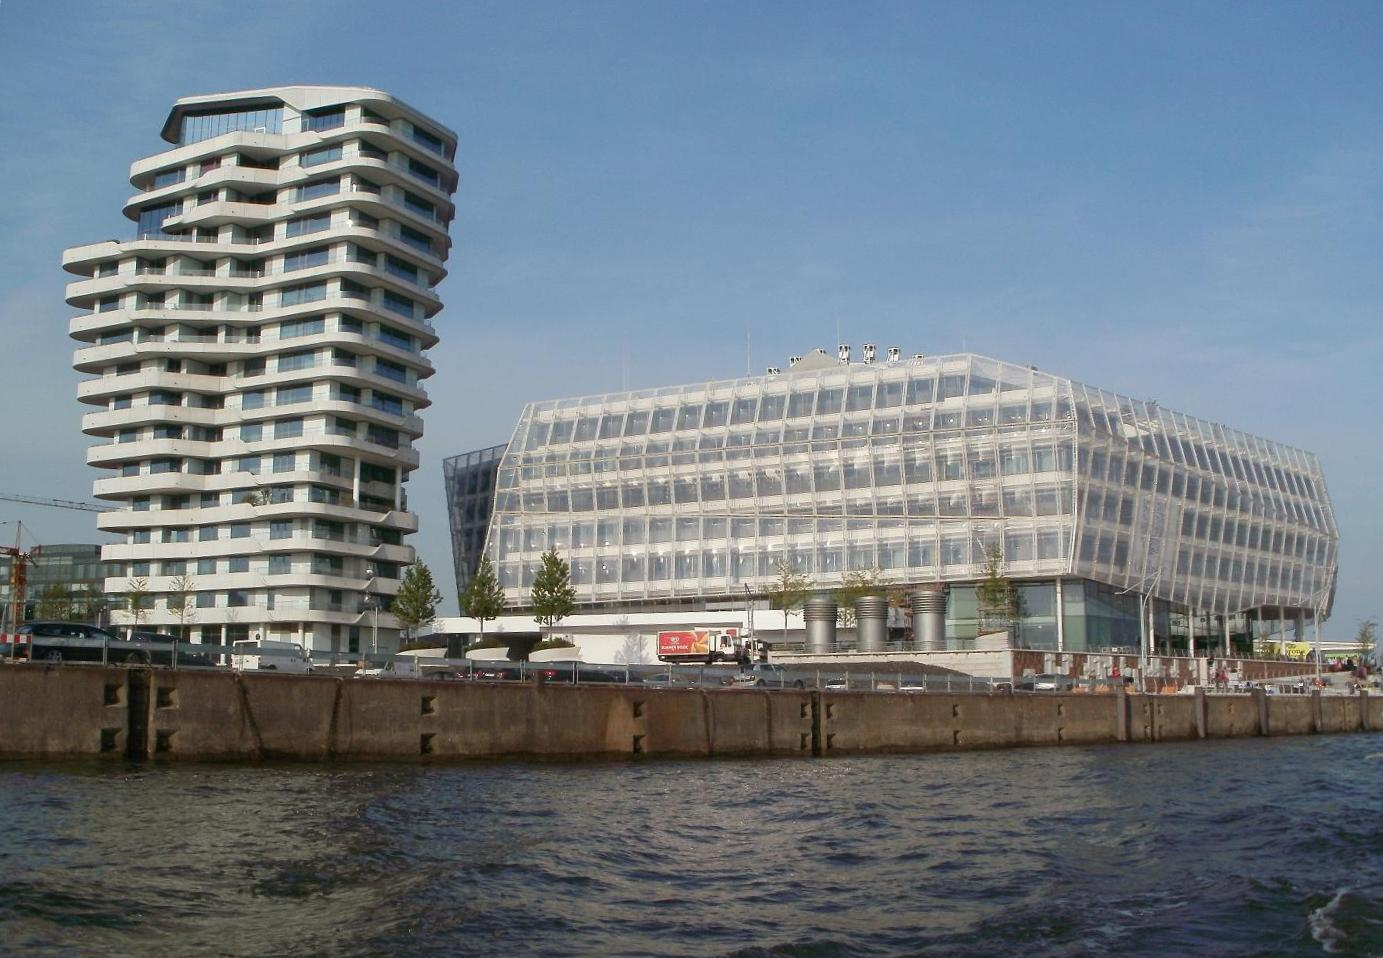 Datei:Marco-Polo-Tower & Unilever-Haus Hamburg-HafenCity.jpg – Wikipedia